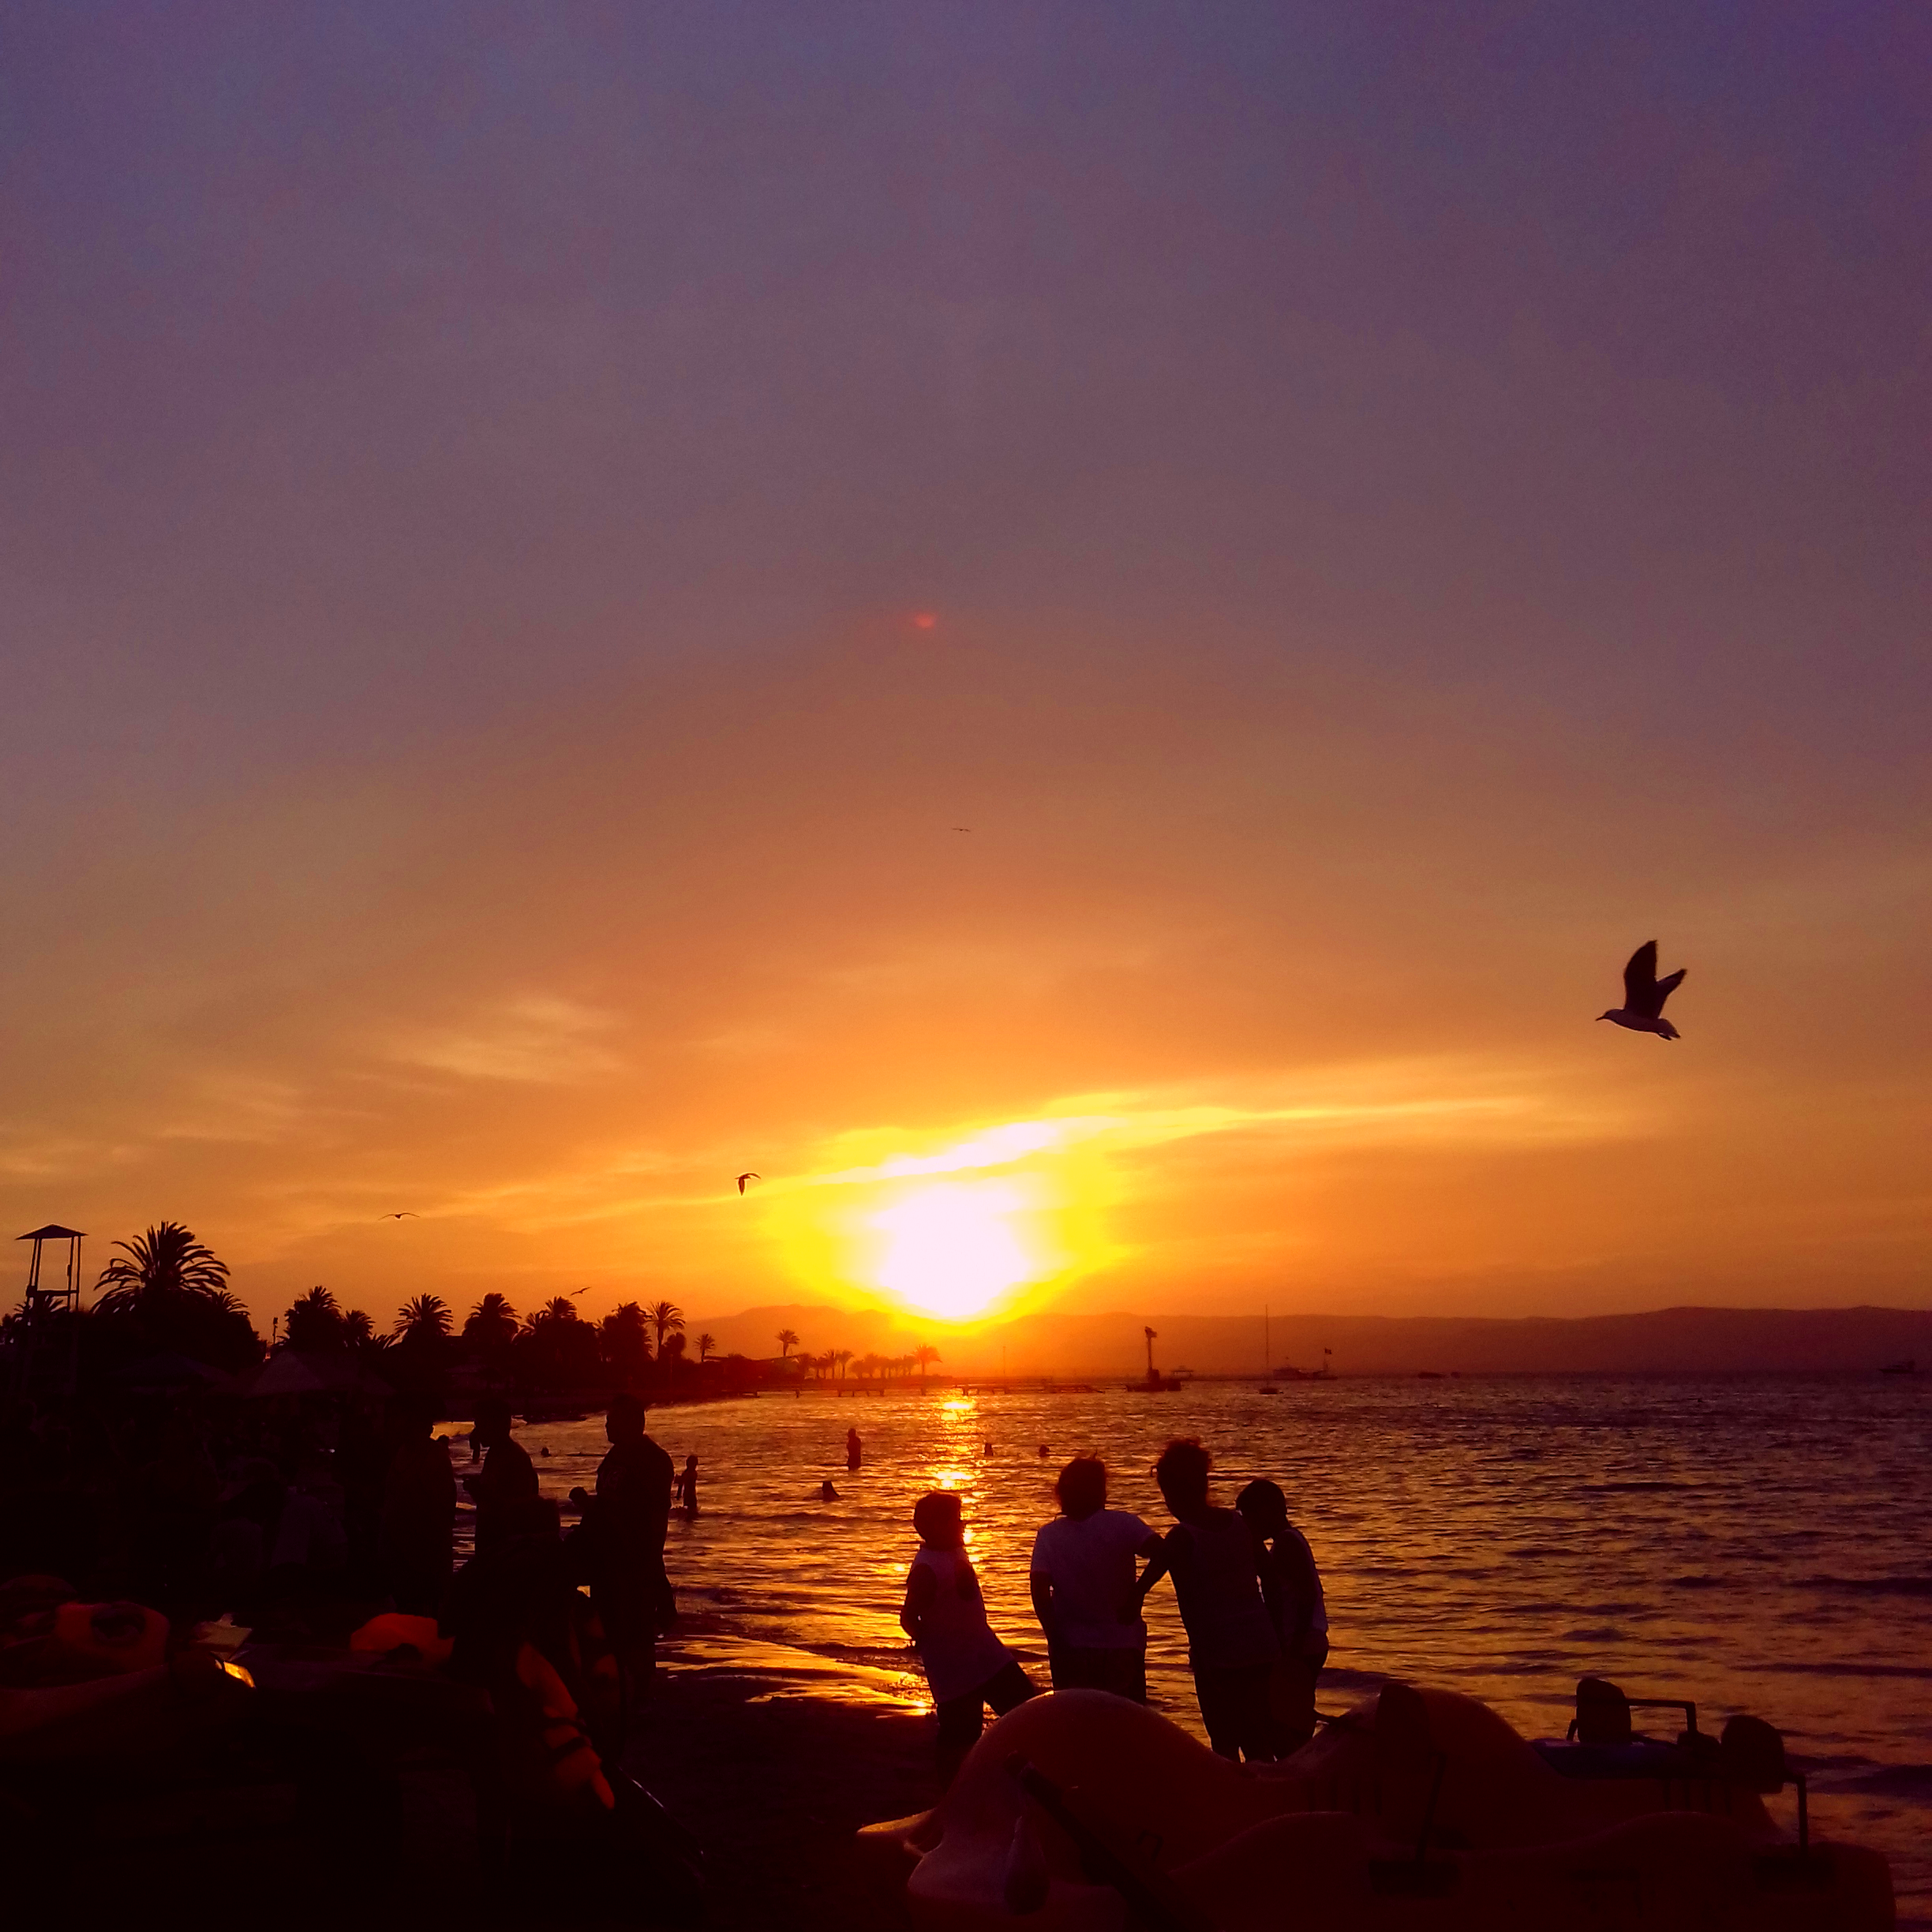 Sunset on a beach with people standing and birds flying